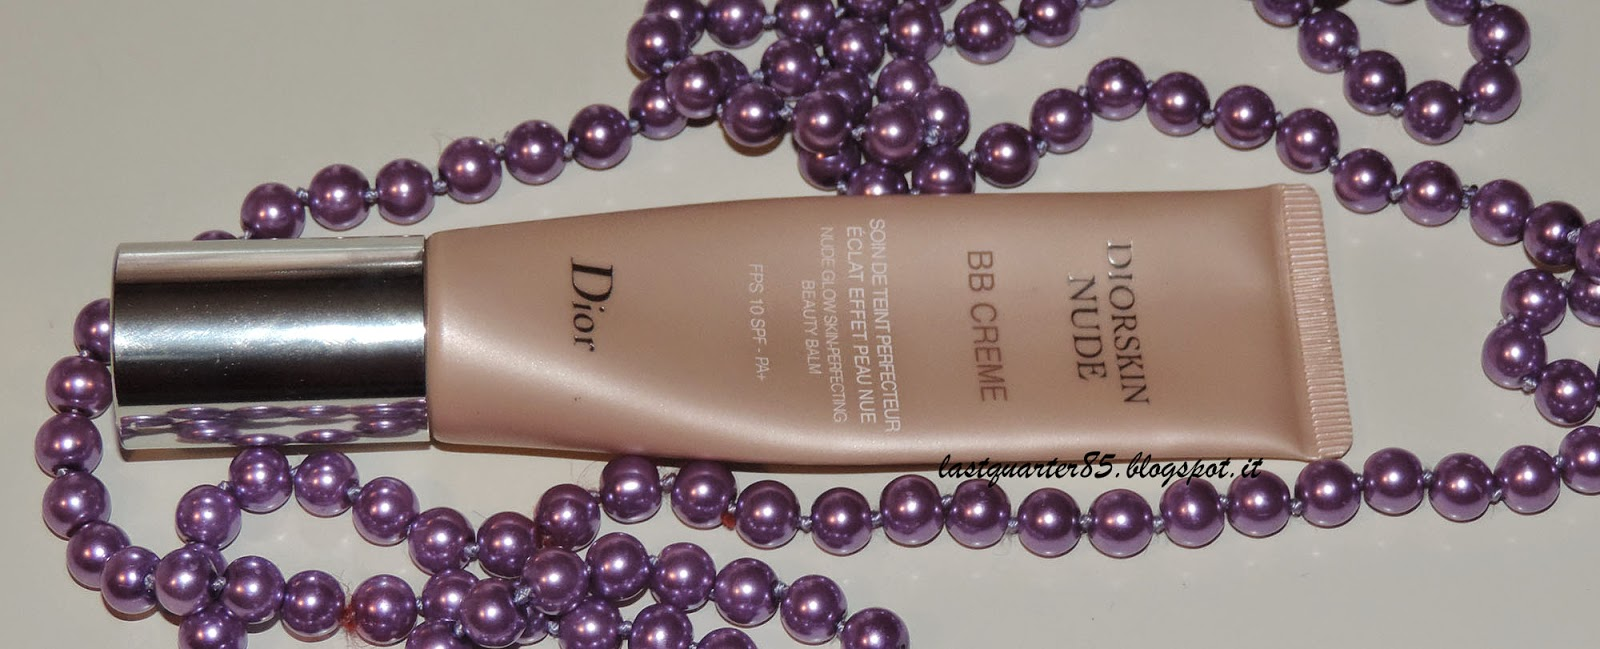 Dior Diorskin Nude BB Cream in 001 Clair.